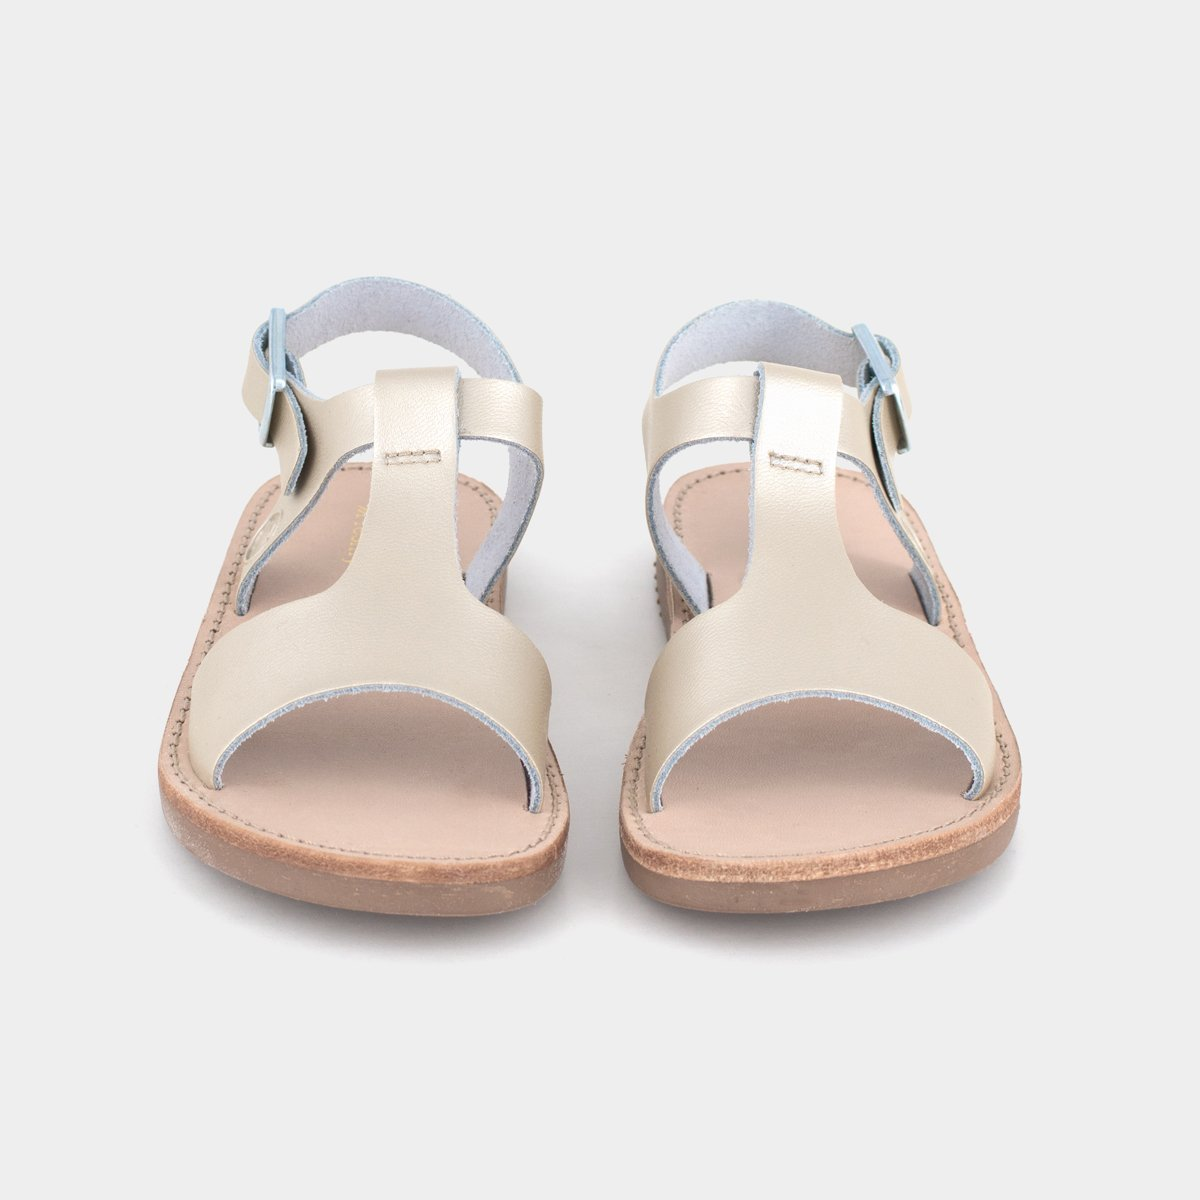 Freshly Picked Platinum Malibu Sandal